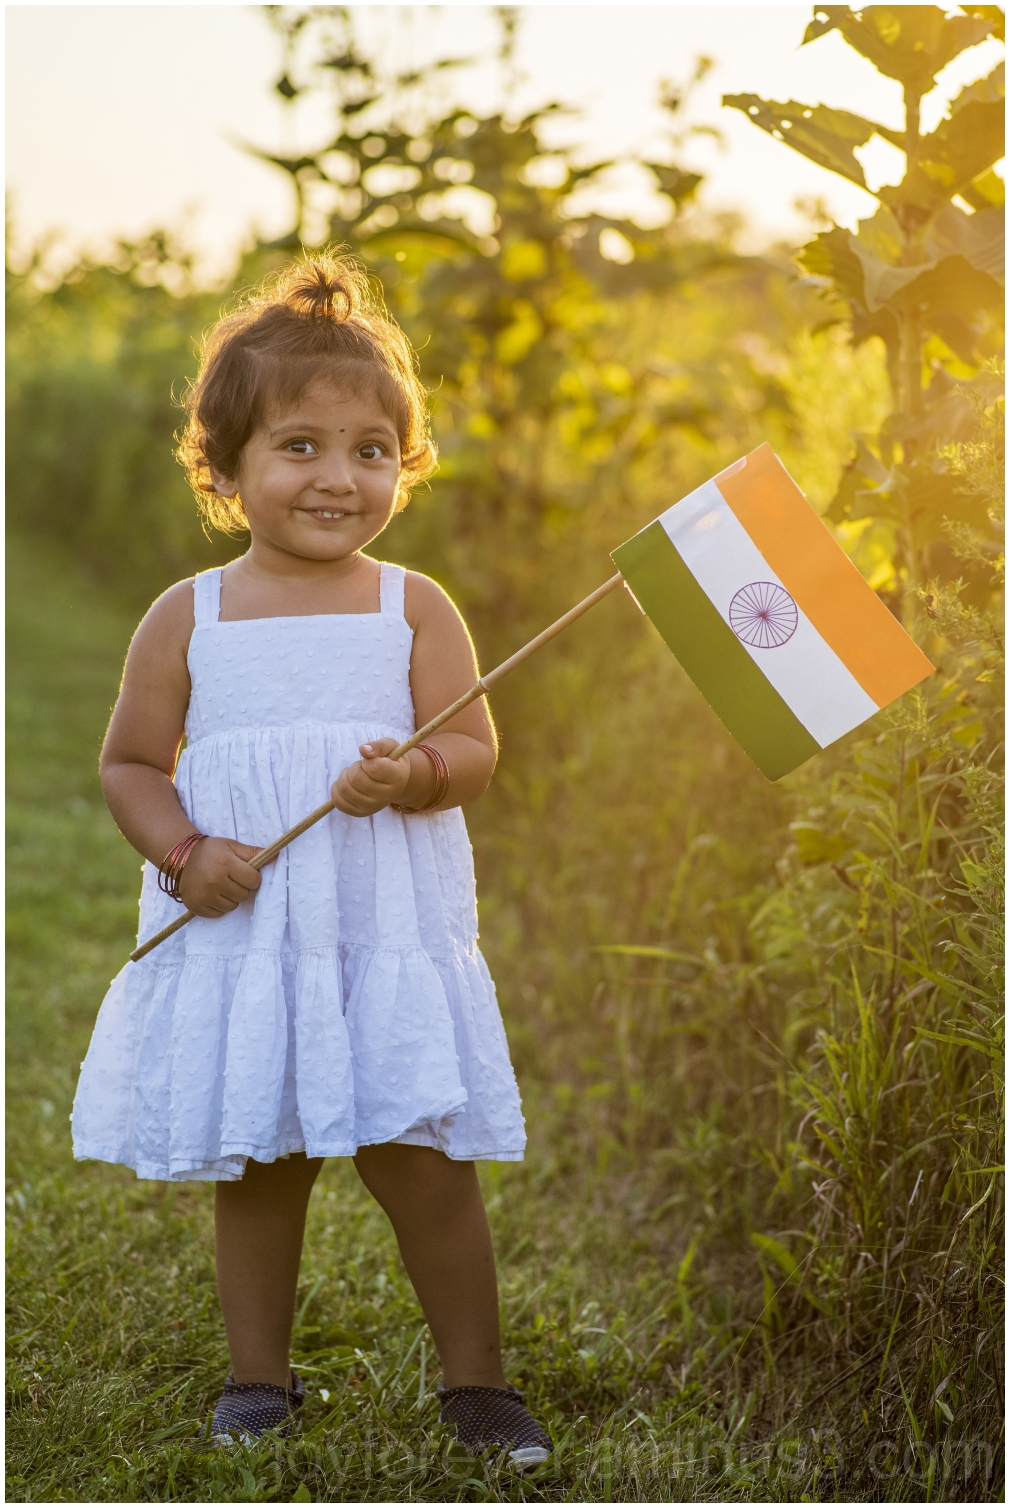 India Indian flag Independence Toddler savannah